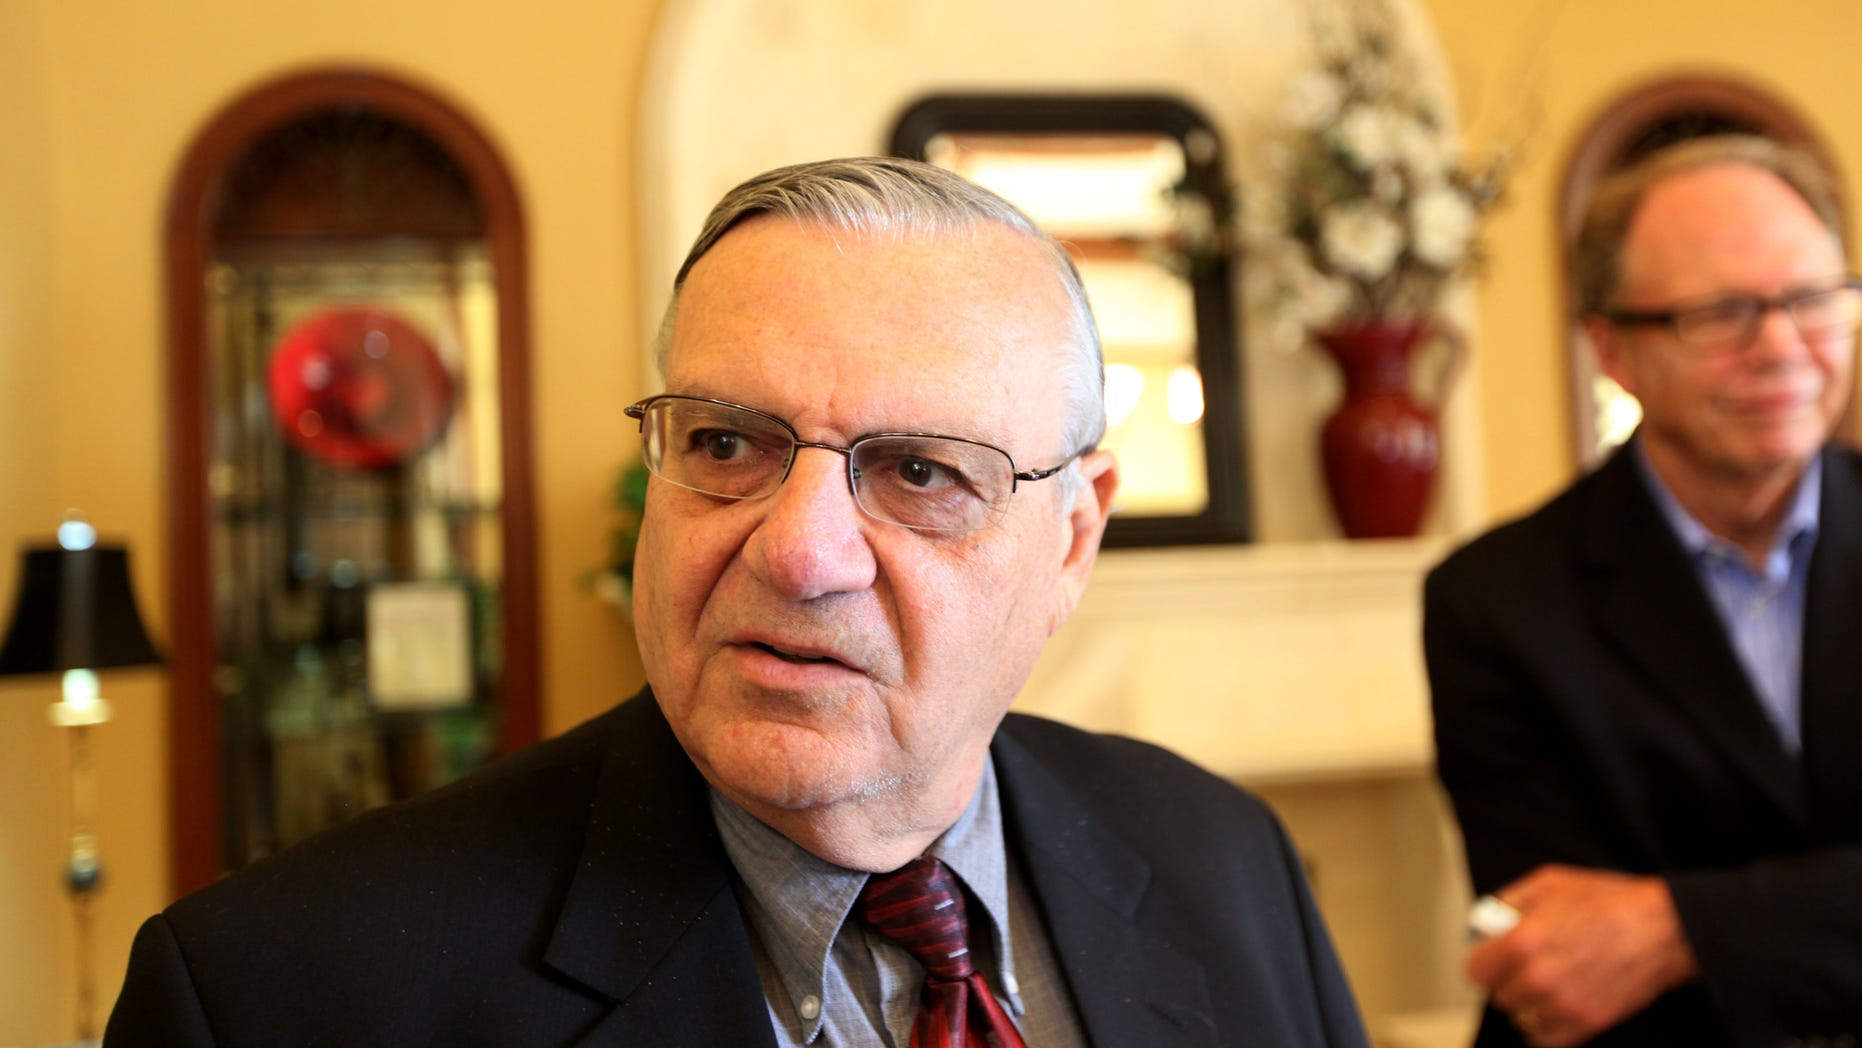 RANCHO BERNARDO, CA - AUGUST 10:  Sheriff Joe Arpaio speaks during a visit to the Rancho Bernardo Inn on August 10, 2010 in Rancho Bernardo, California.  Arpaio, who is Sheriff of Maricopa County in Arizona, gained national attention for using deputies to conduct raids to apprehend illegal immigrants and building large outdoor prison tents to house inmates.  (Photo by Sandy Huffaker/Getty Images)